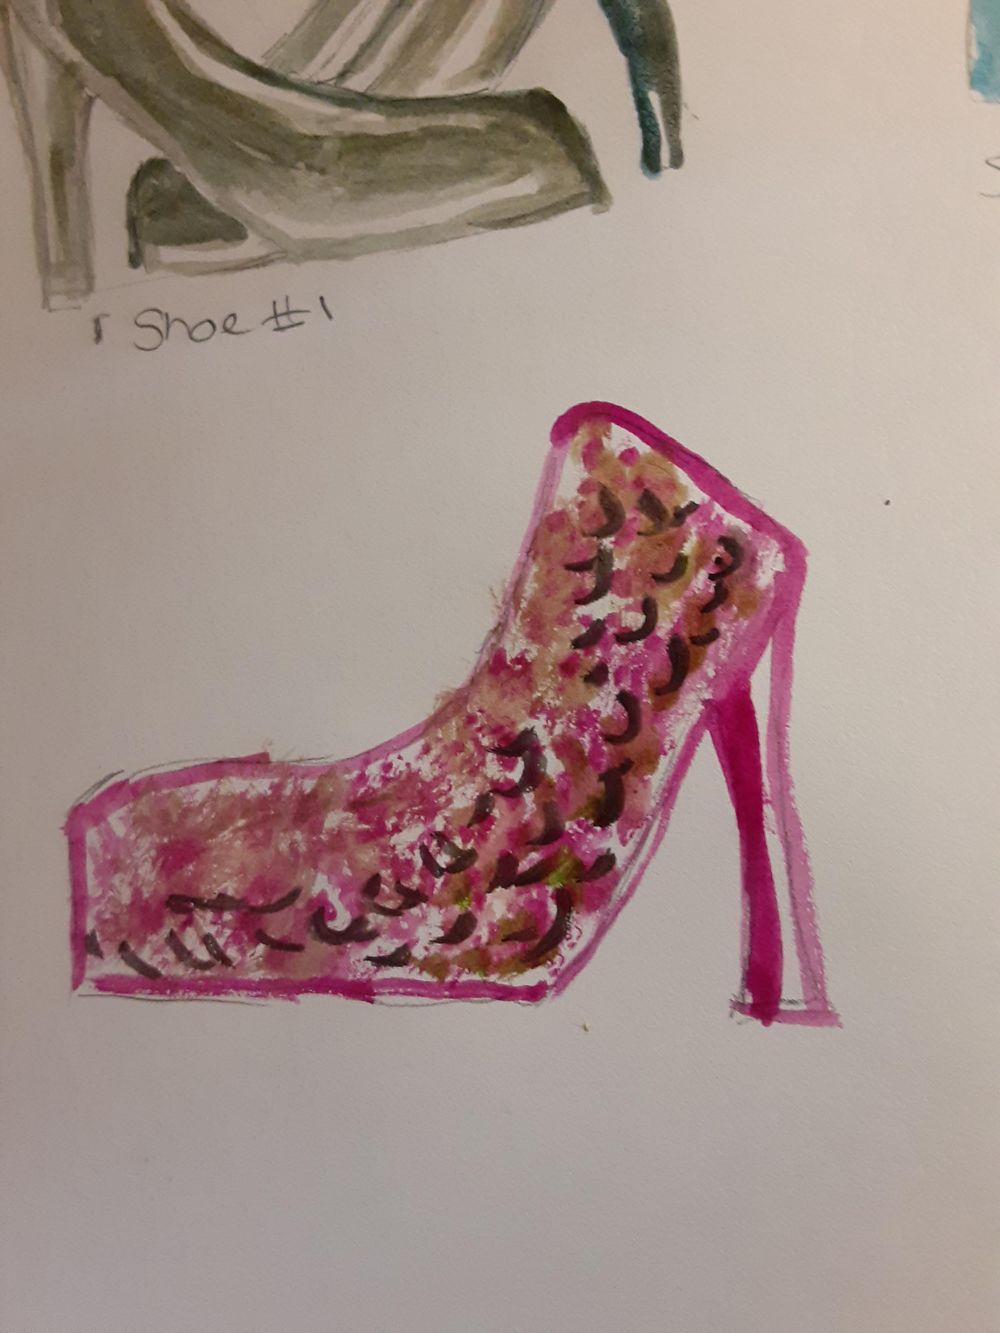 My Shoes - image 3 - student project